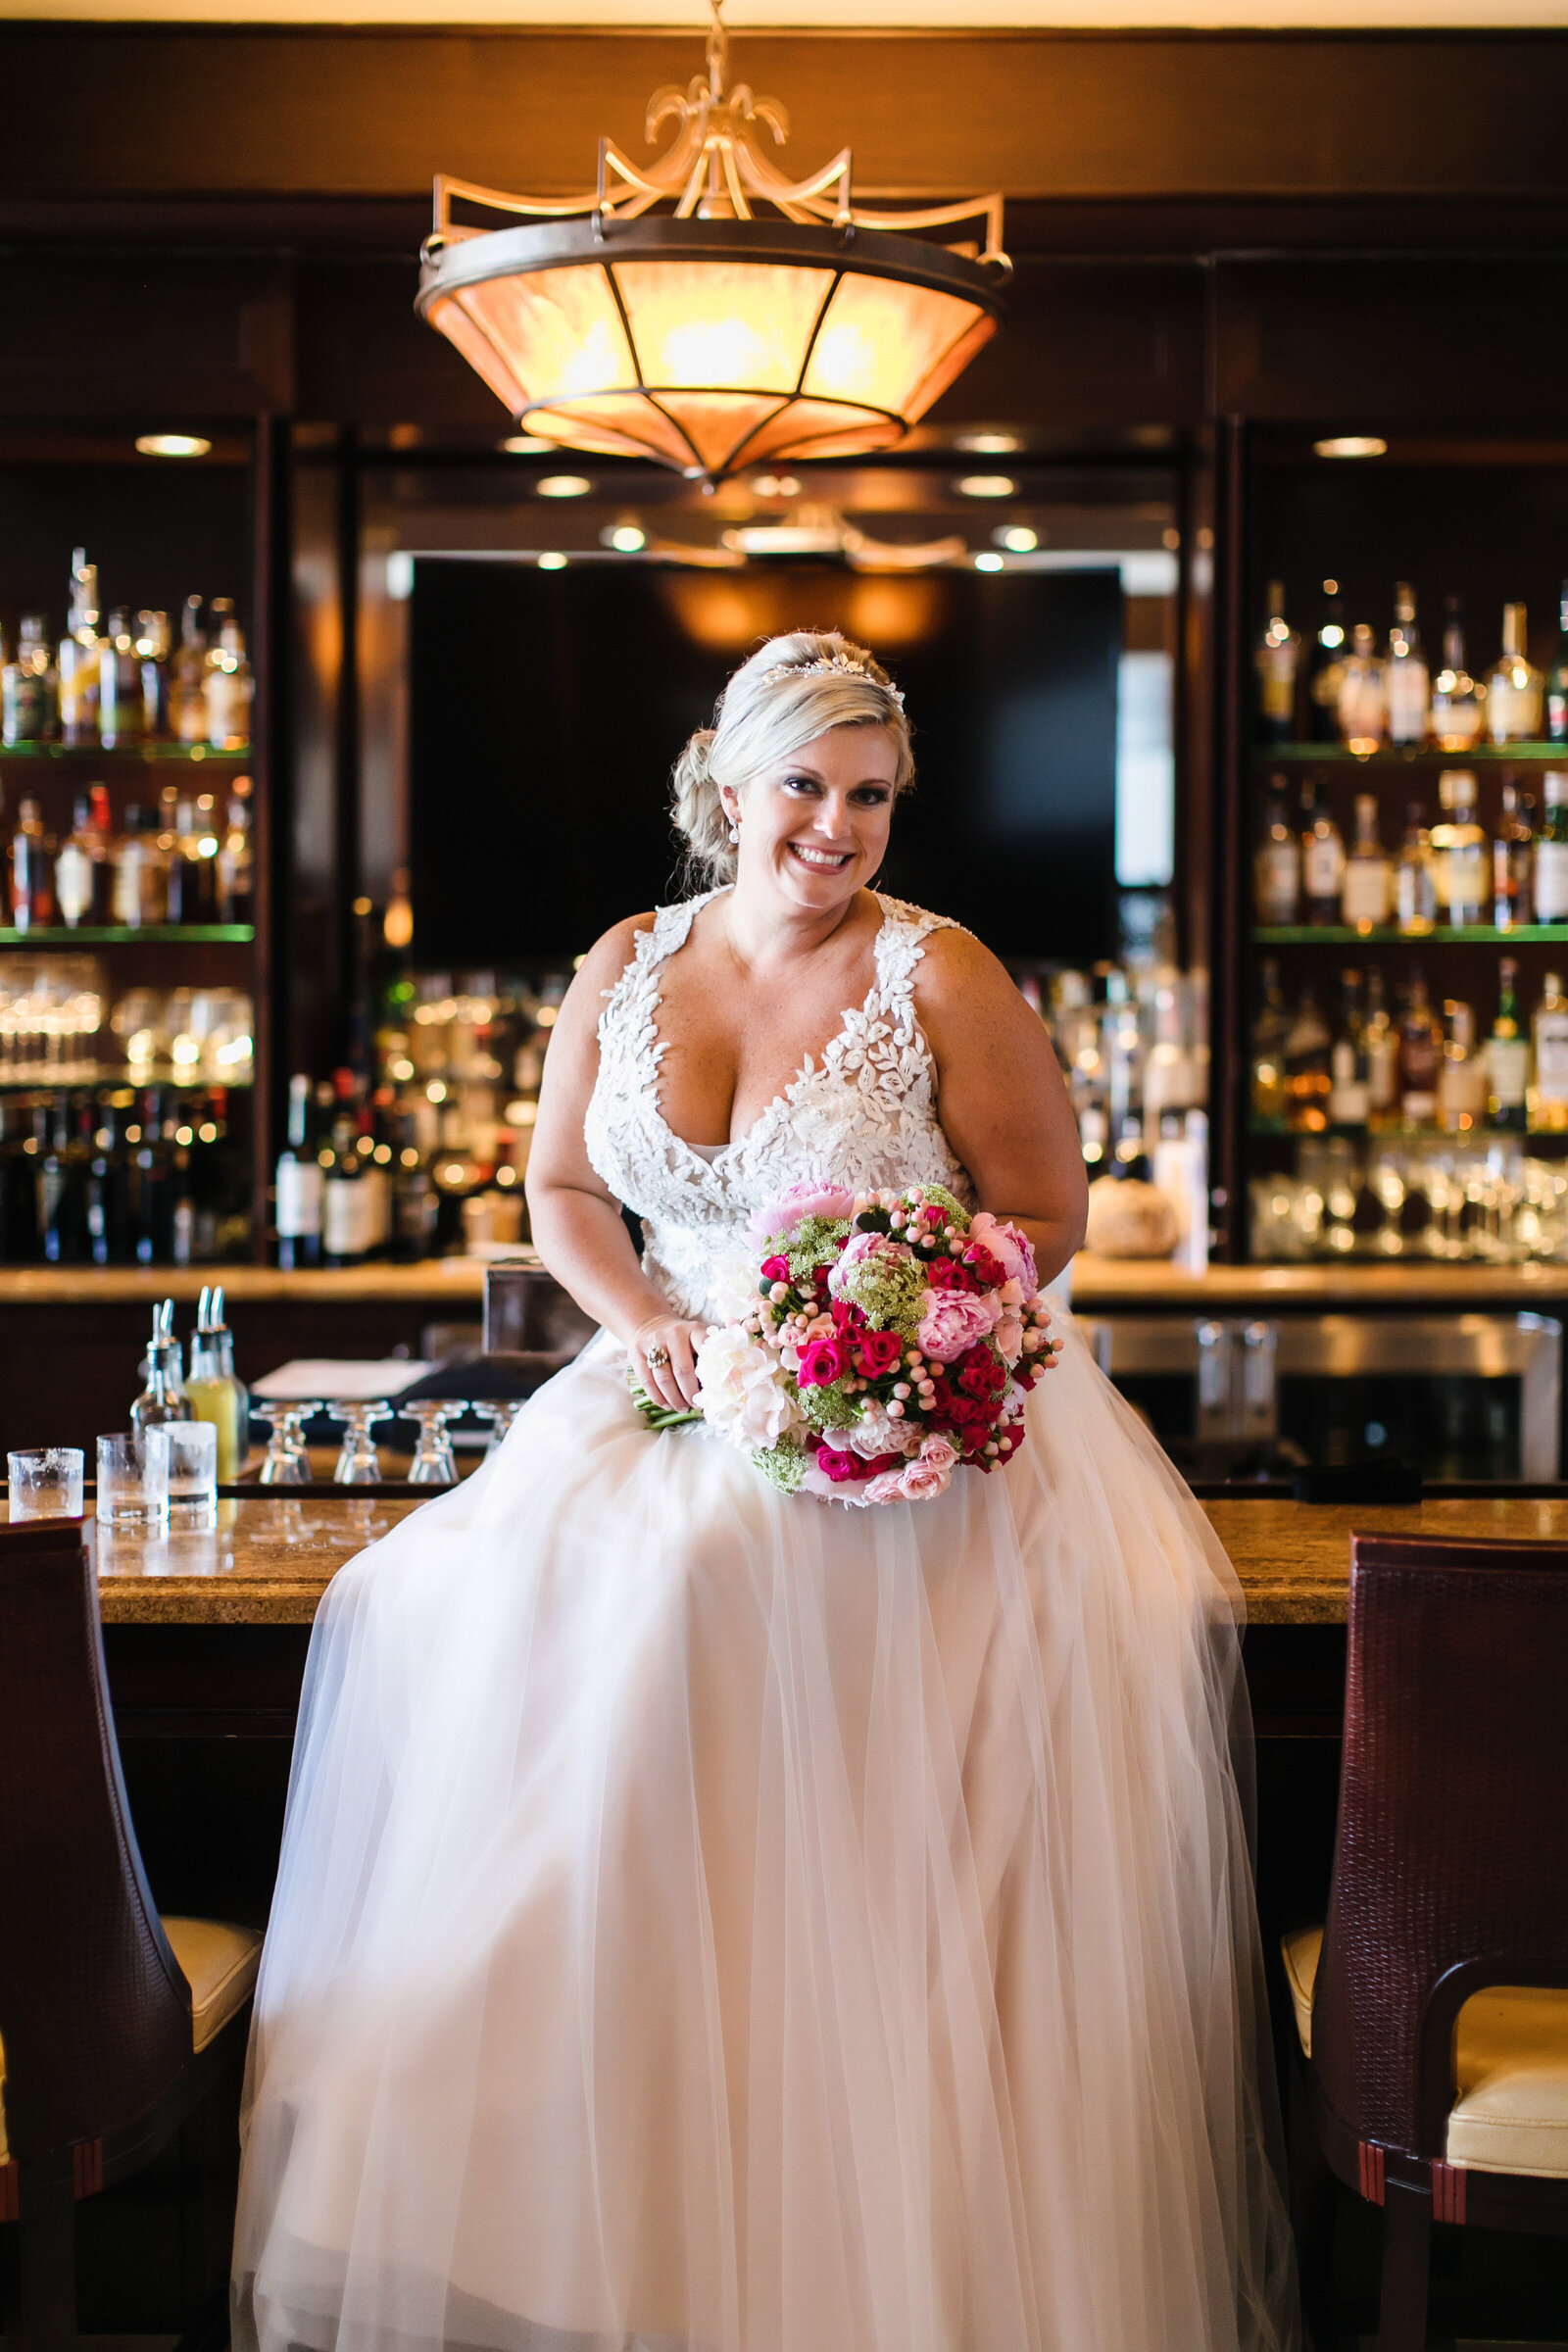 vero beach wedding kristy and brian - brandi watford photography 333